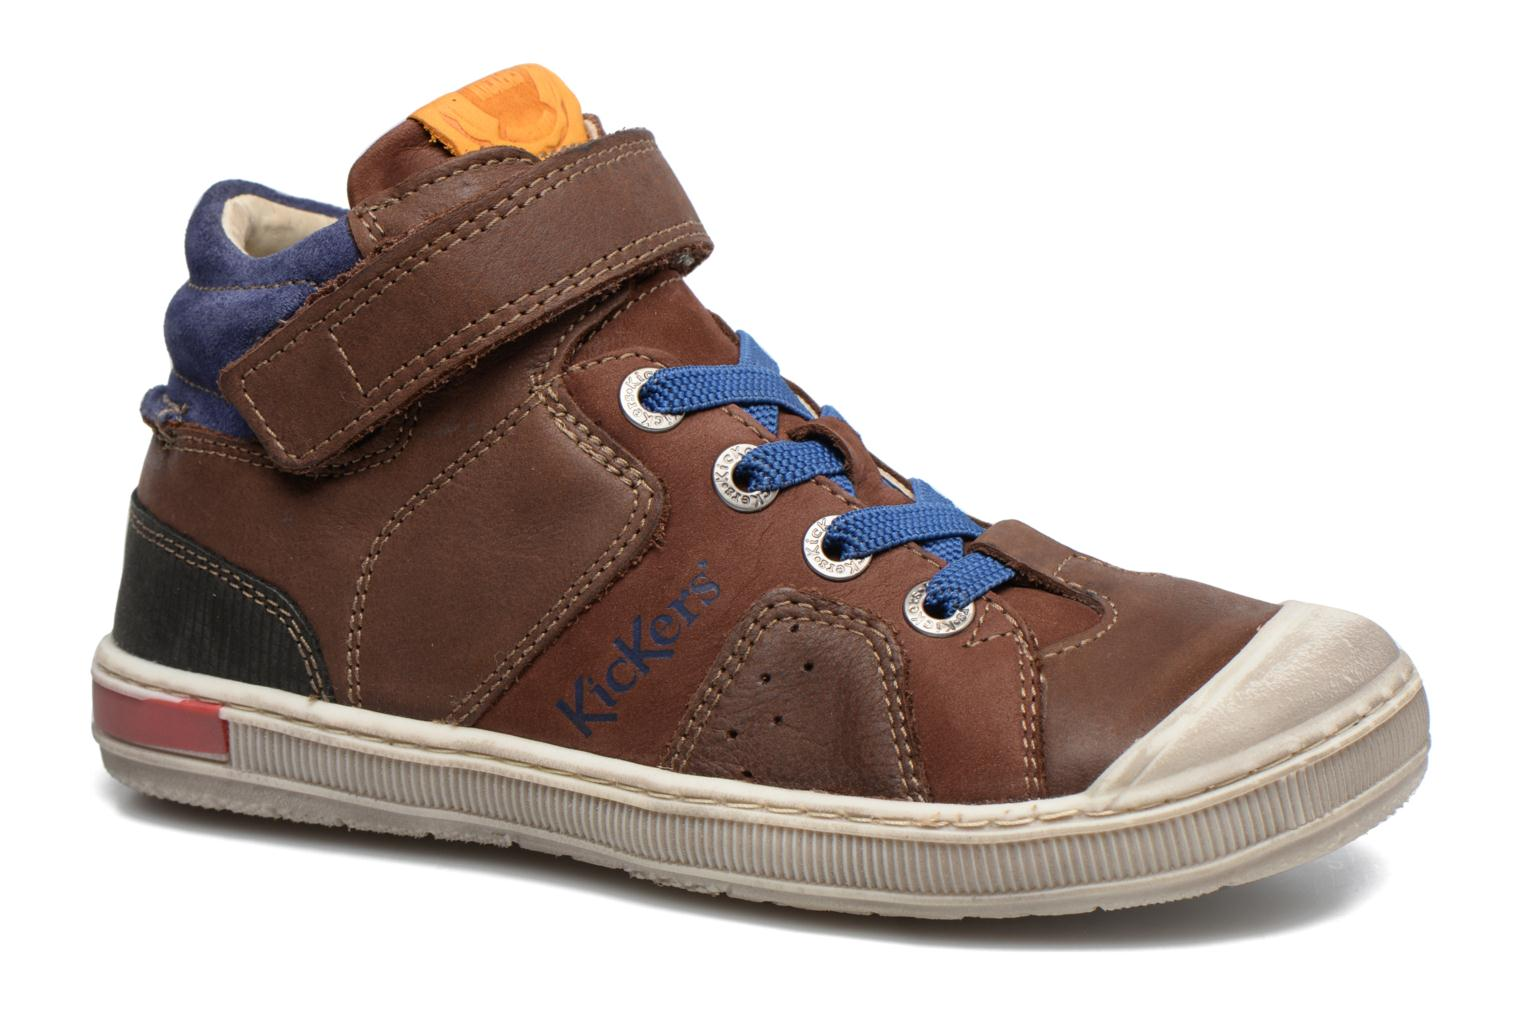 Baskets Kickers Iguane Marron vue détail/paire